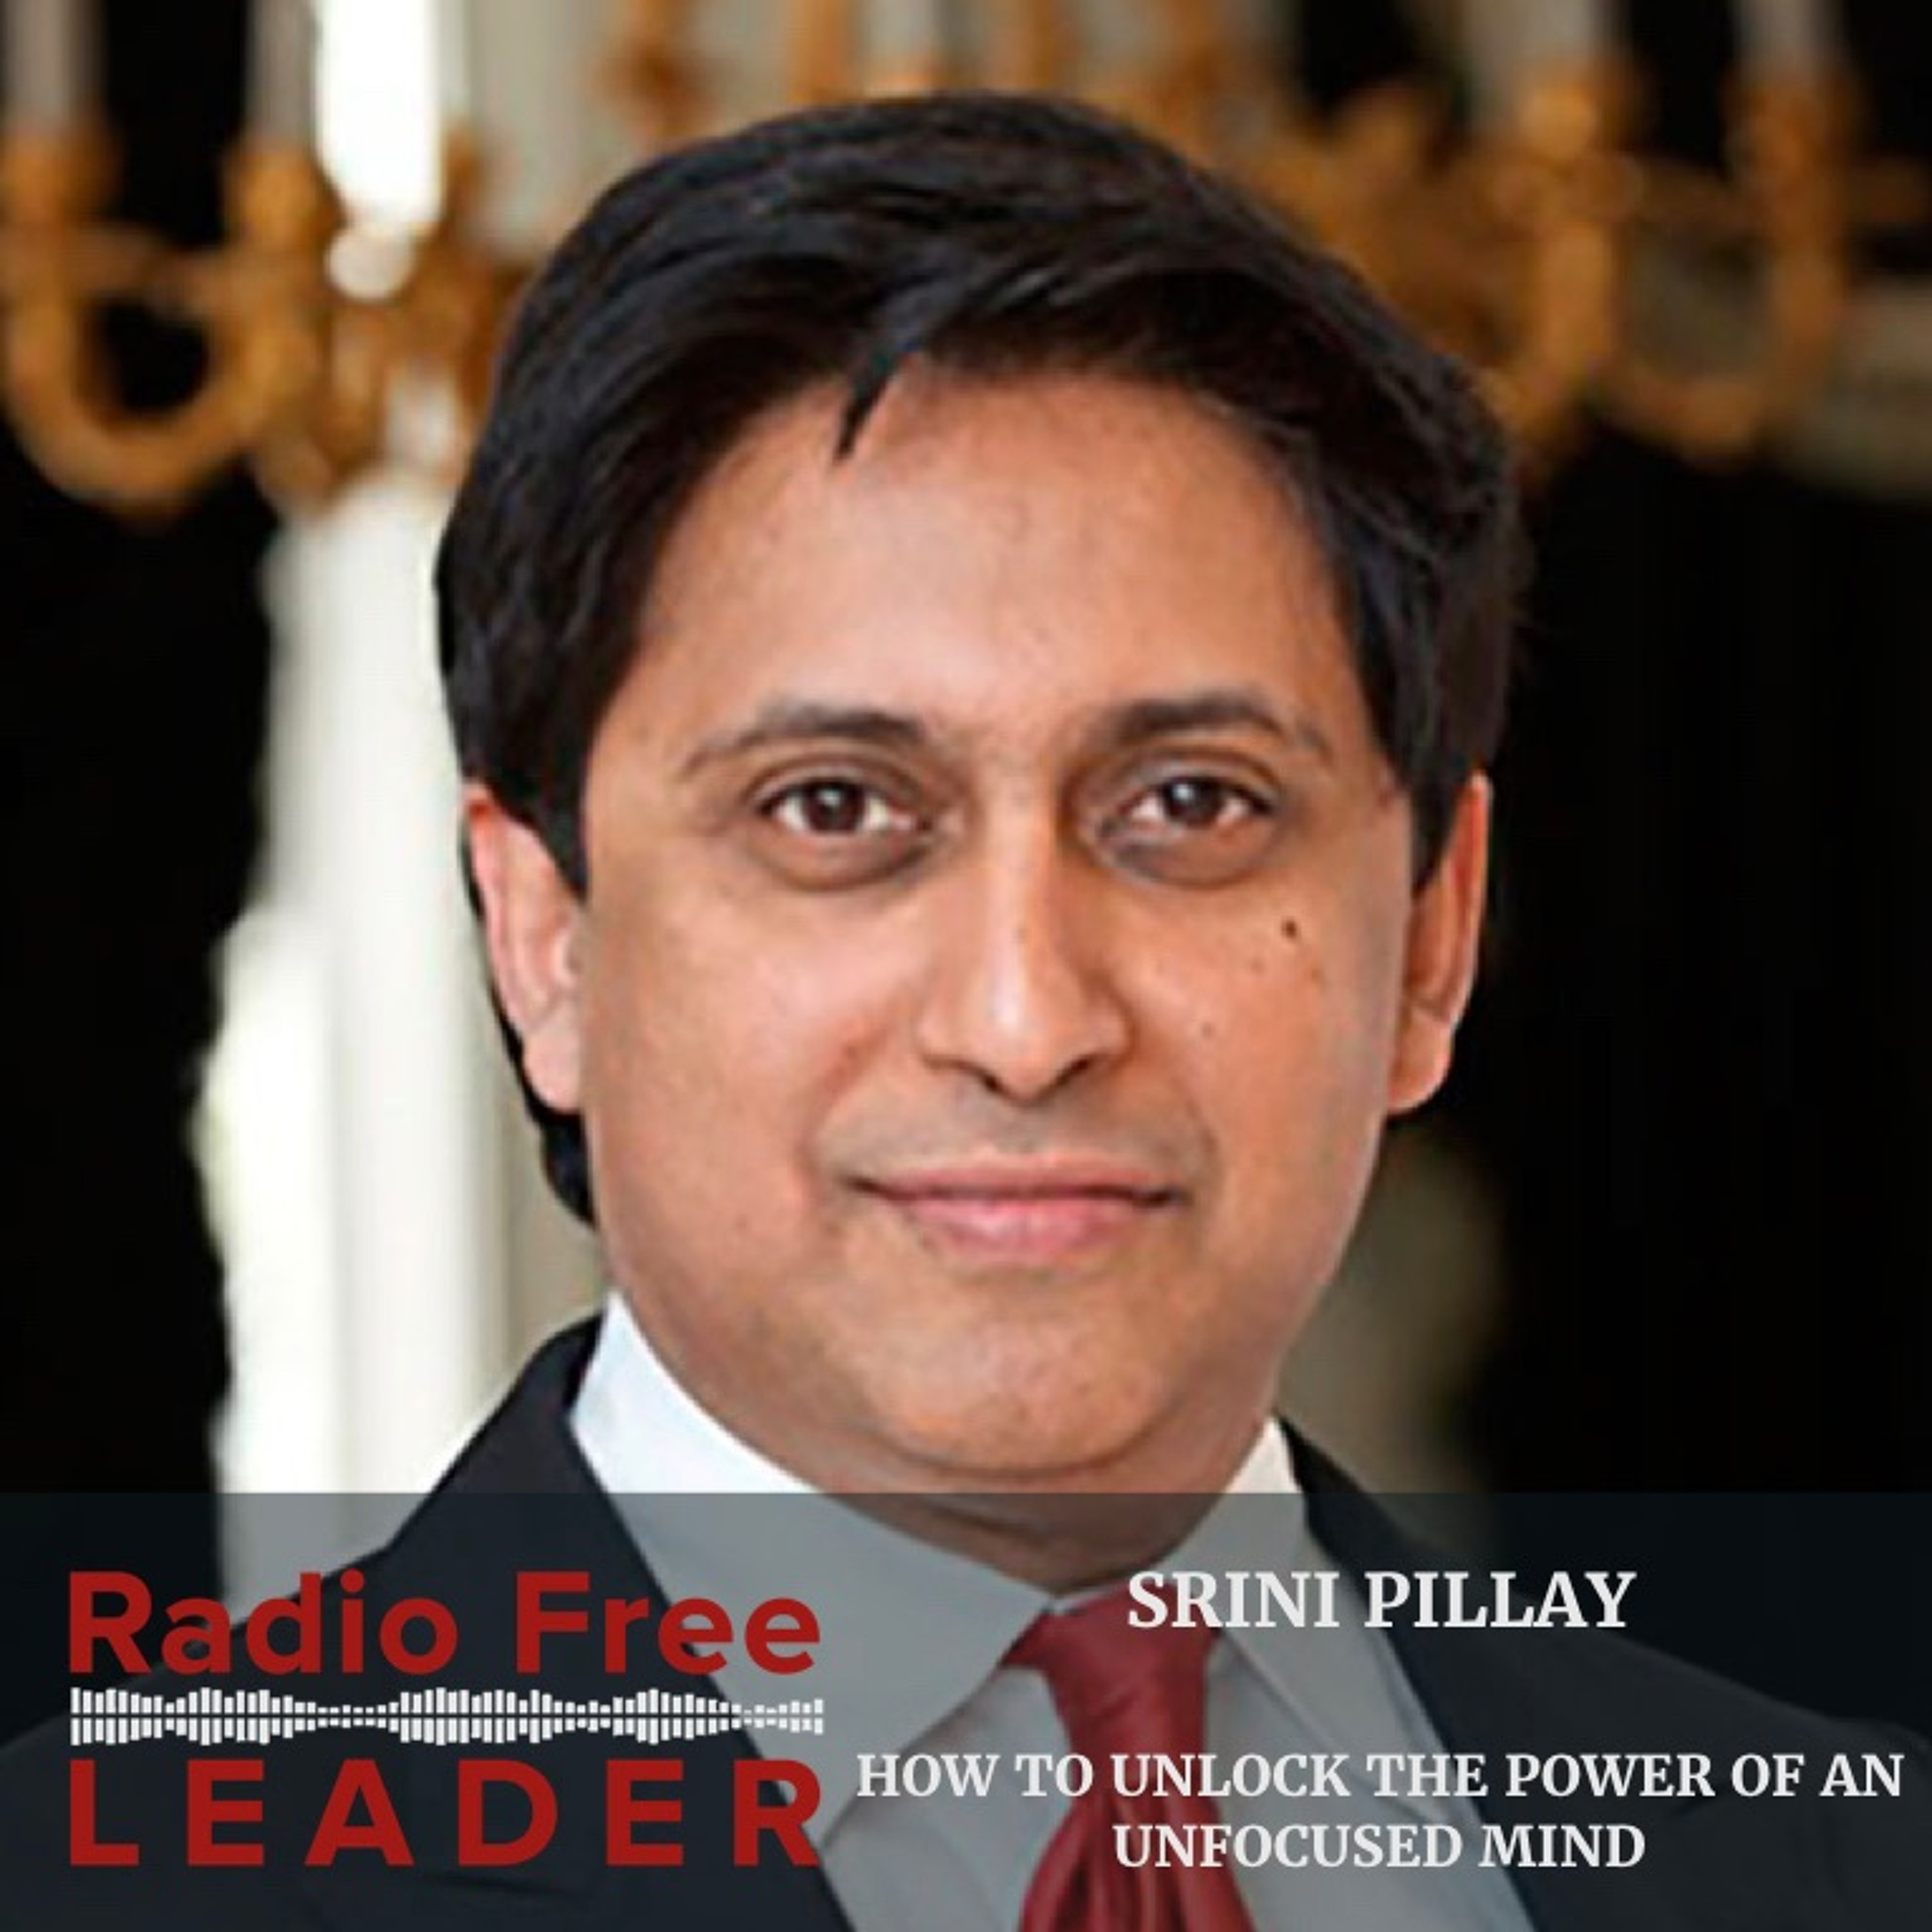 0825 | How to Unlock The Power of an Unfocused Mind with Srini Pillay